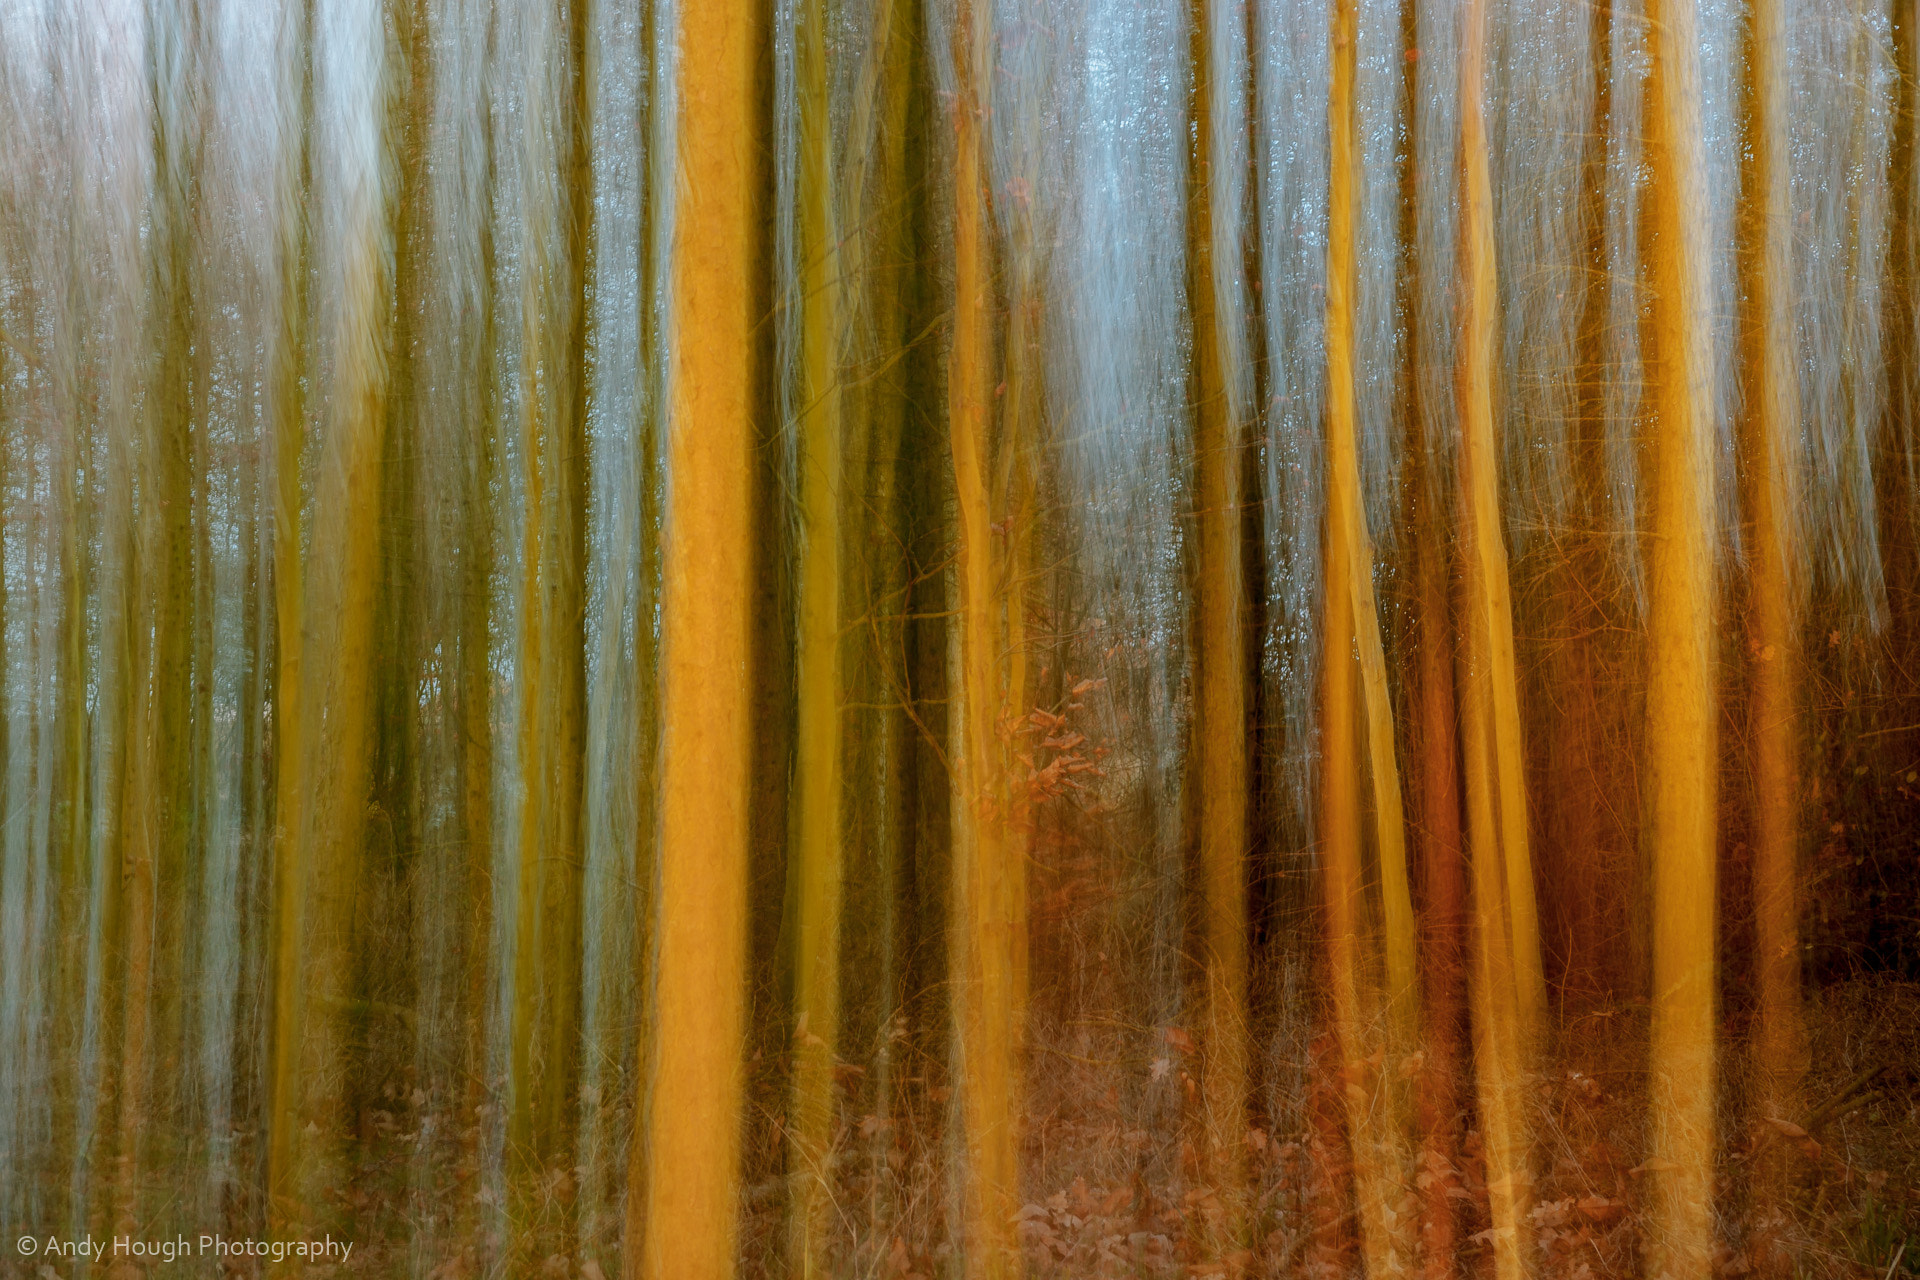 Photograph Stretched by Andy Hough on 500px